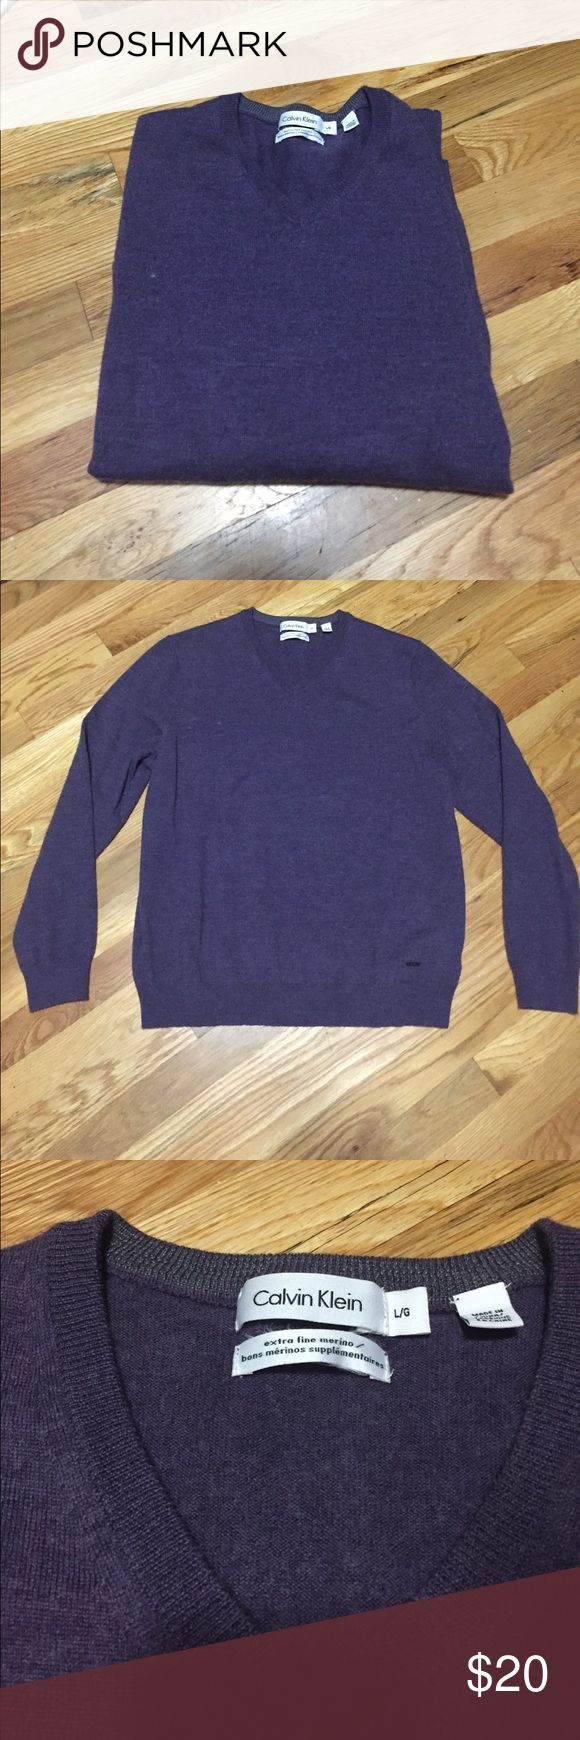 """Calvin Klein Extra fine Merino Vneck Sweater men L Great condition, extra fine wool v neck sweater. There is a white dot by the neck (photographed) that is not a stain but in the fabric. Sweater length: 25"""" shoulders: 17"""" sleeve length: 24"""" Calvin Klein Sweaters V-Neck"""